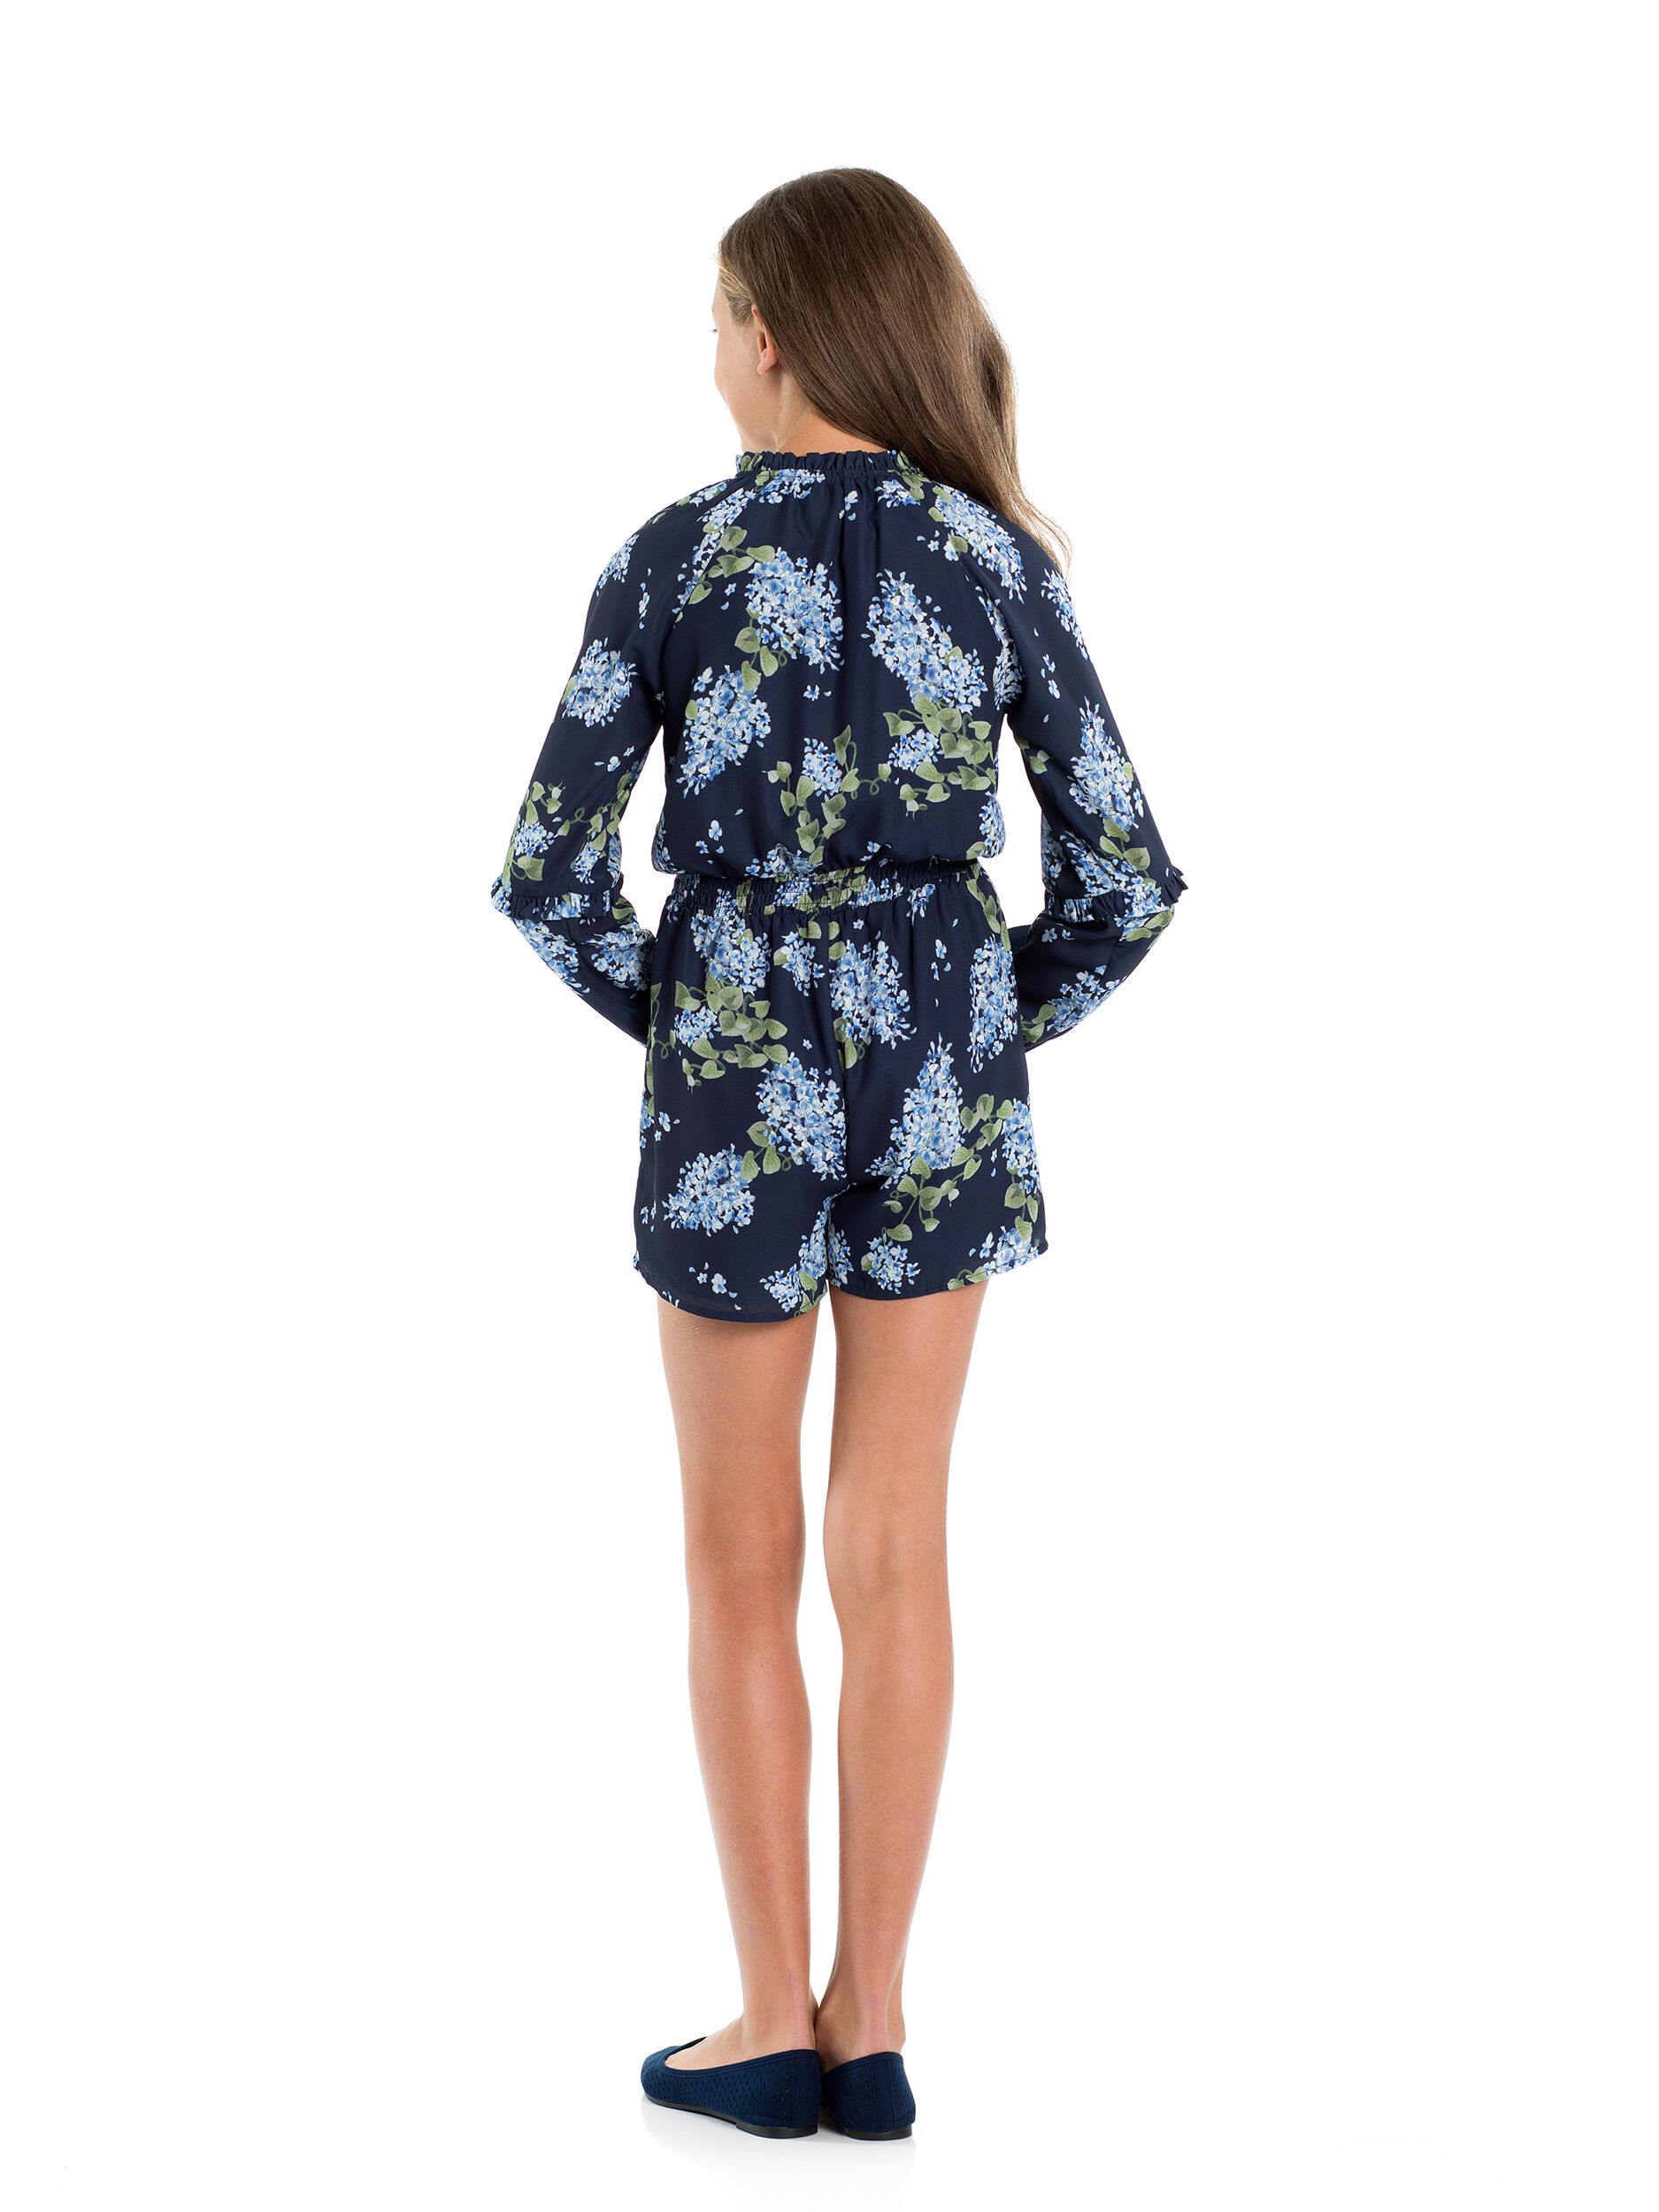 8-14 Girls Polly Playsuit